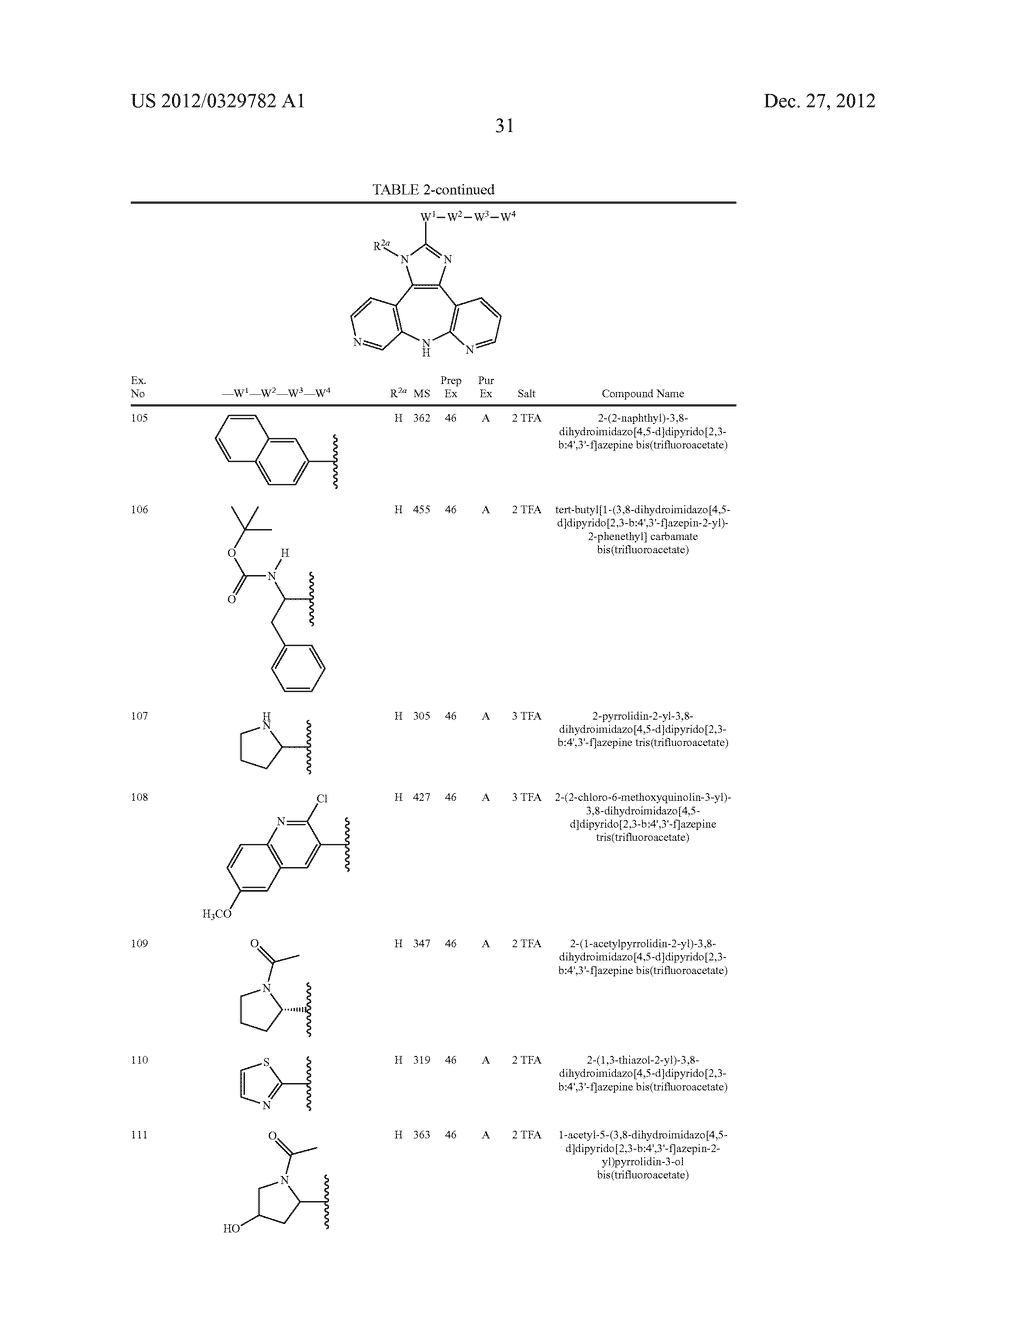 AZEPINE INHIBITORS OF JANUS KINASES - diagram, schematic, and image 32